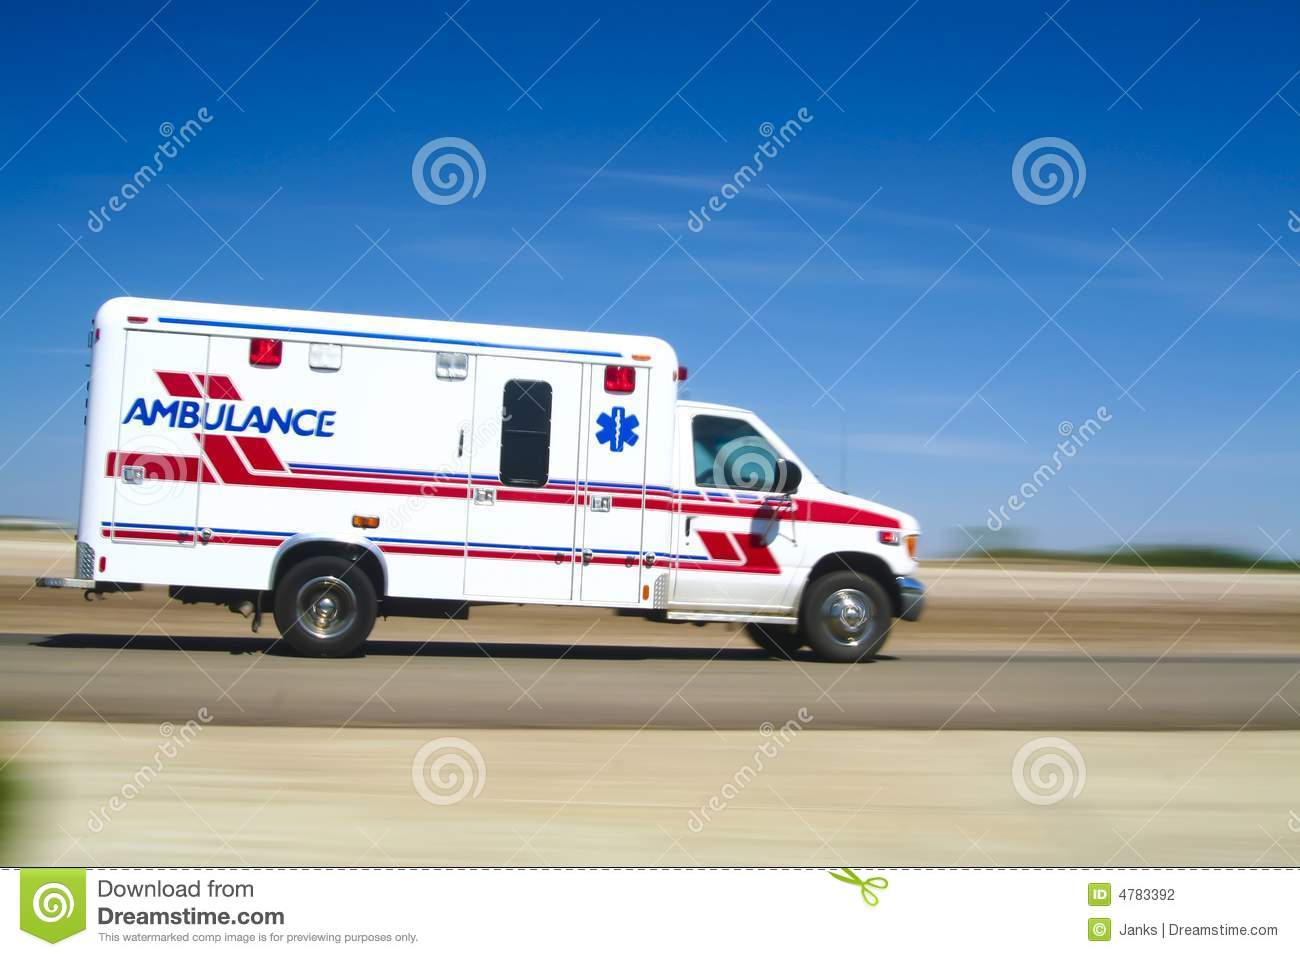 How to call an ambulance in lspdfr